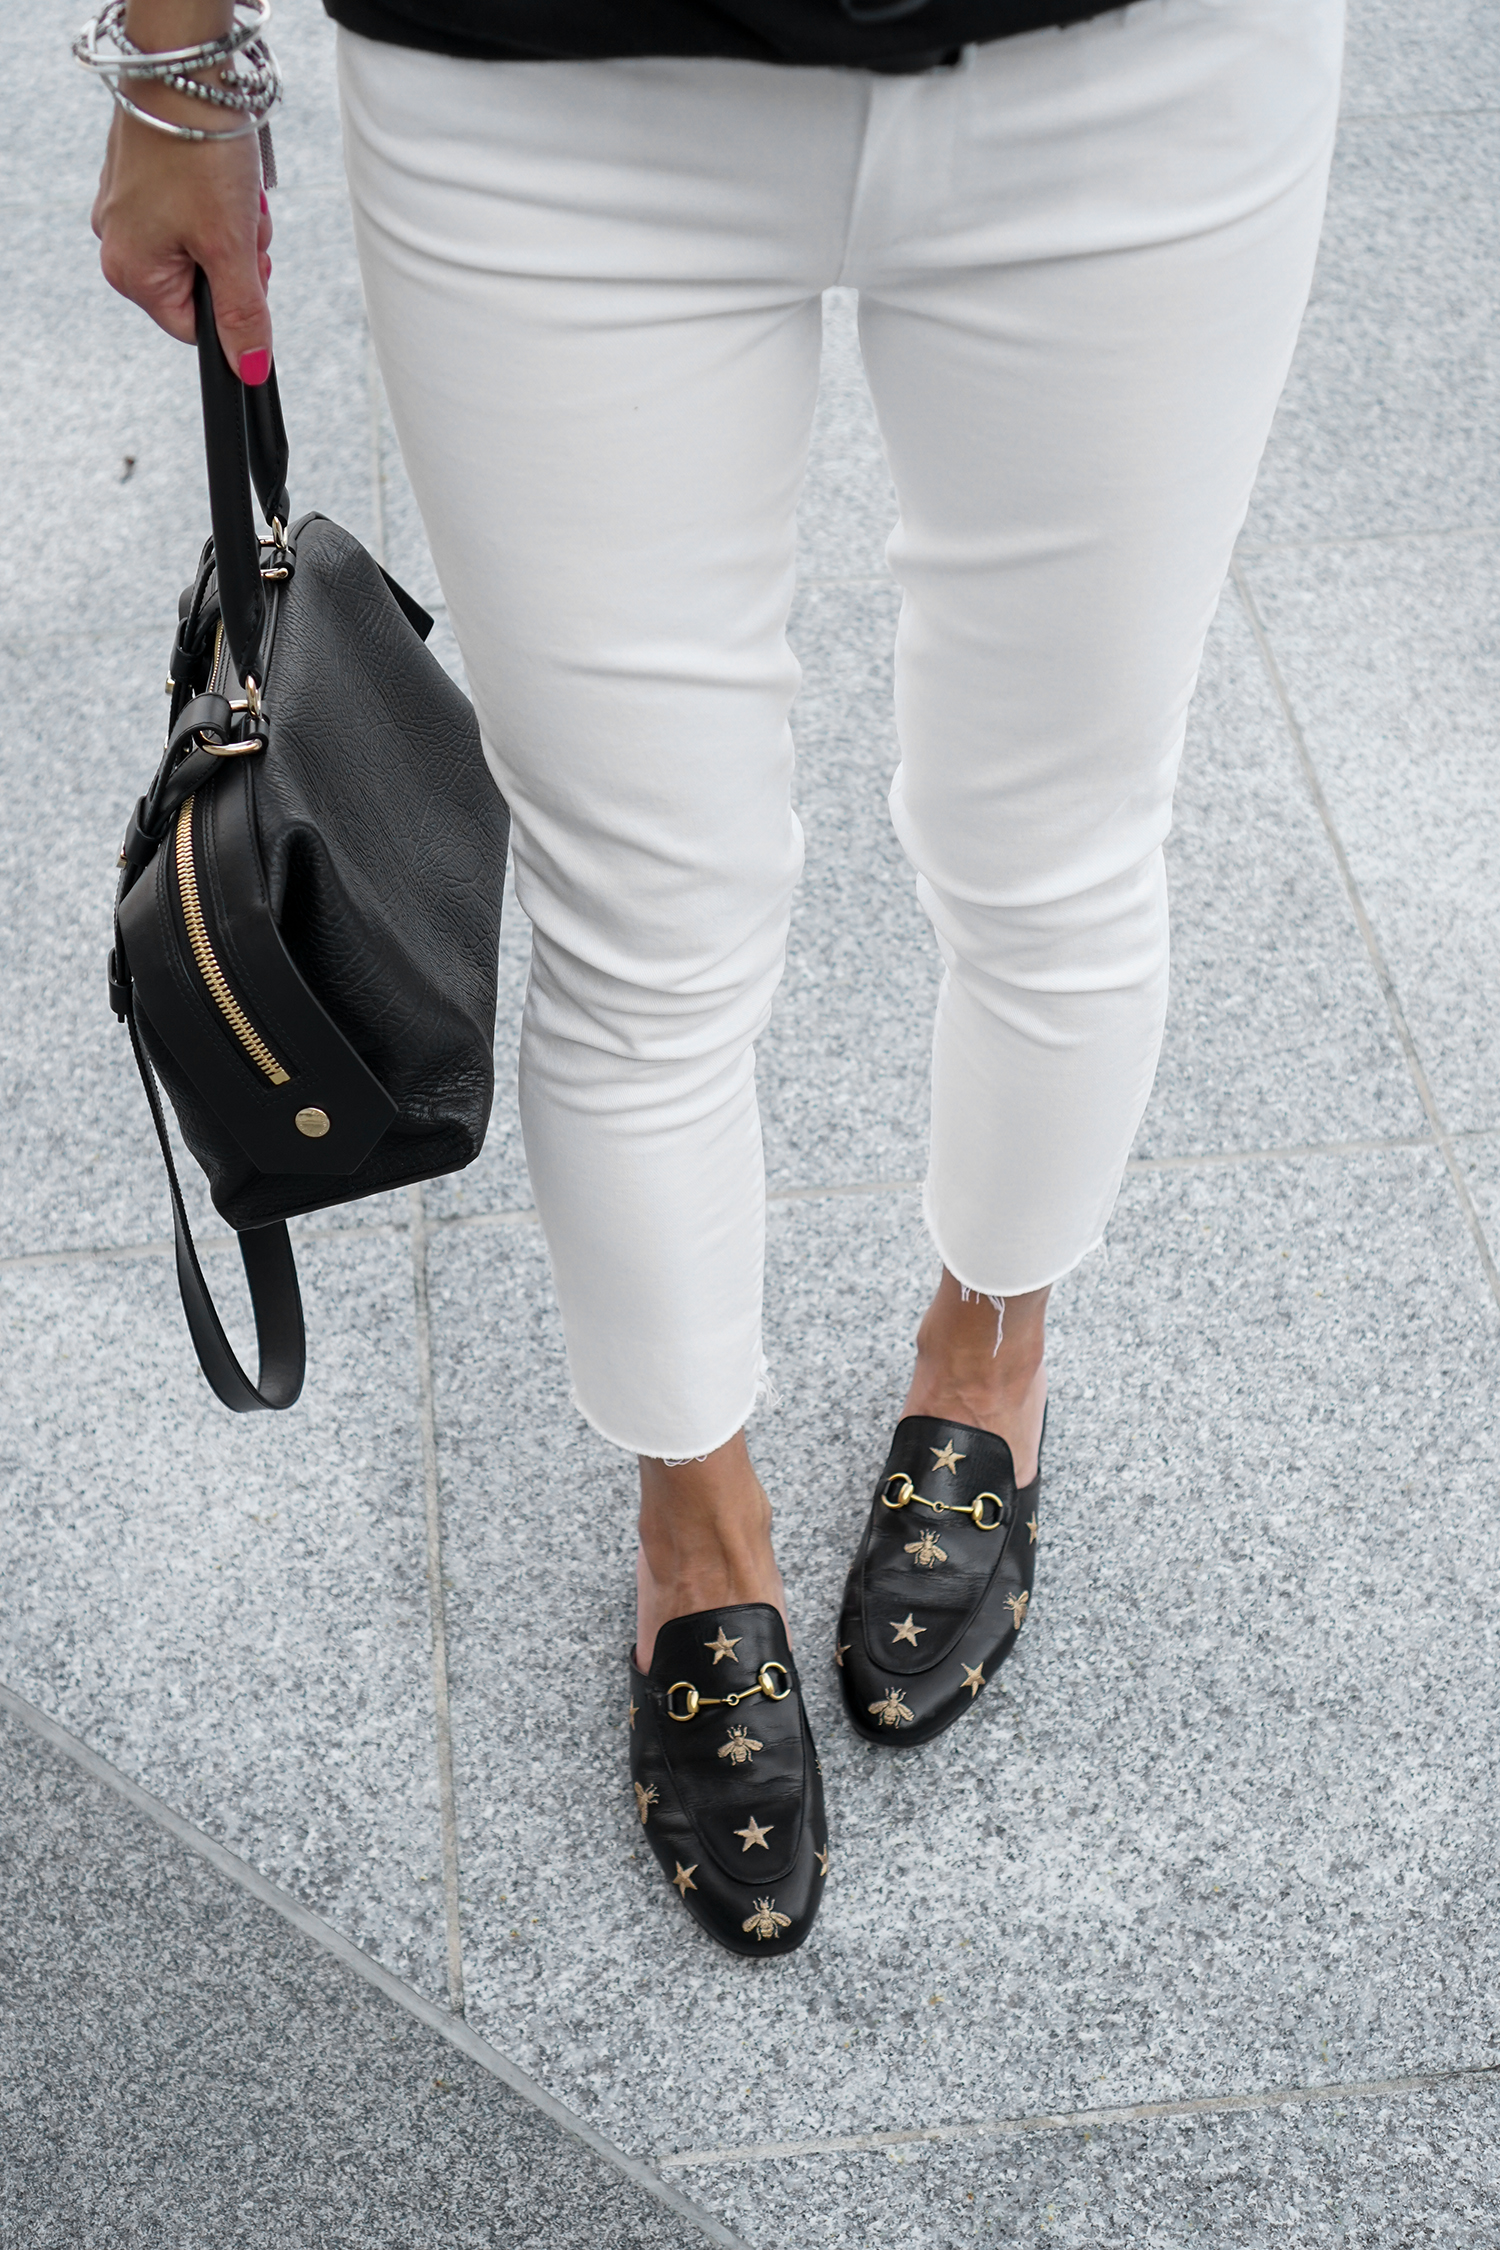 Gucci Princetown Mules Outfit